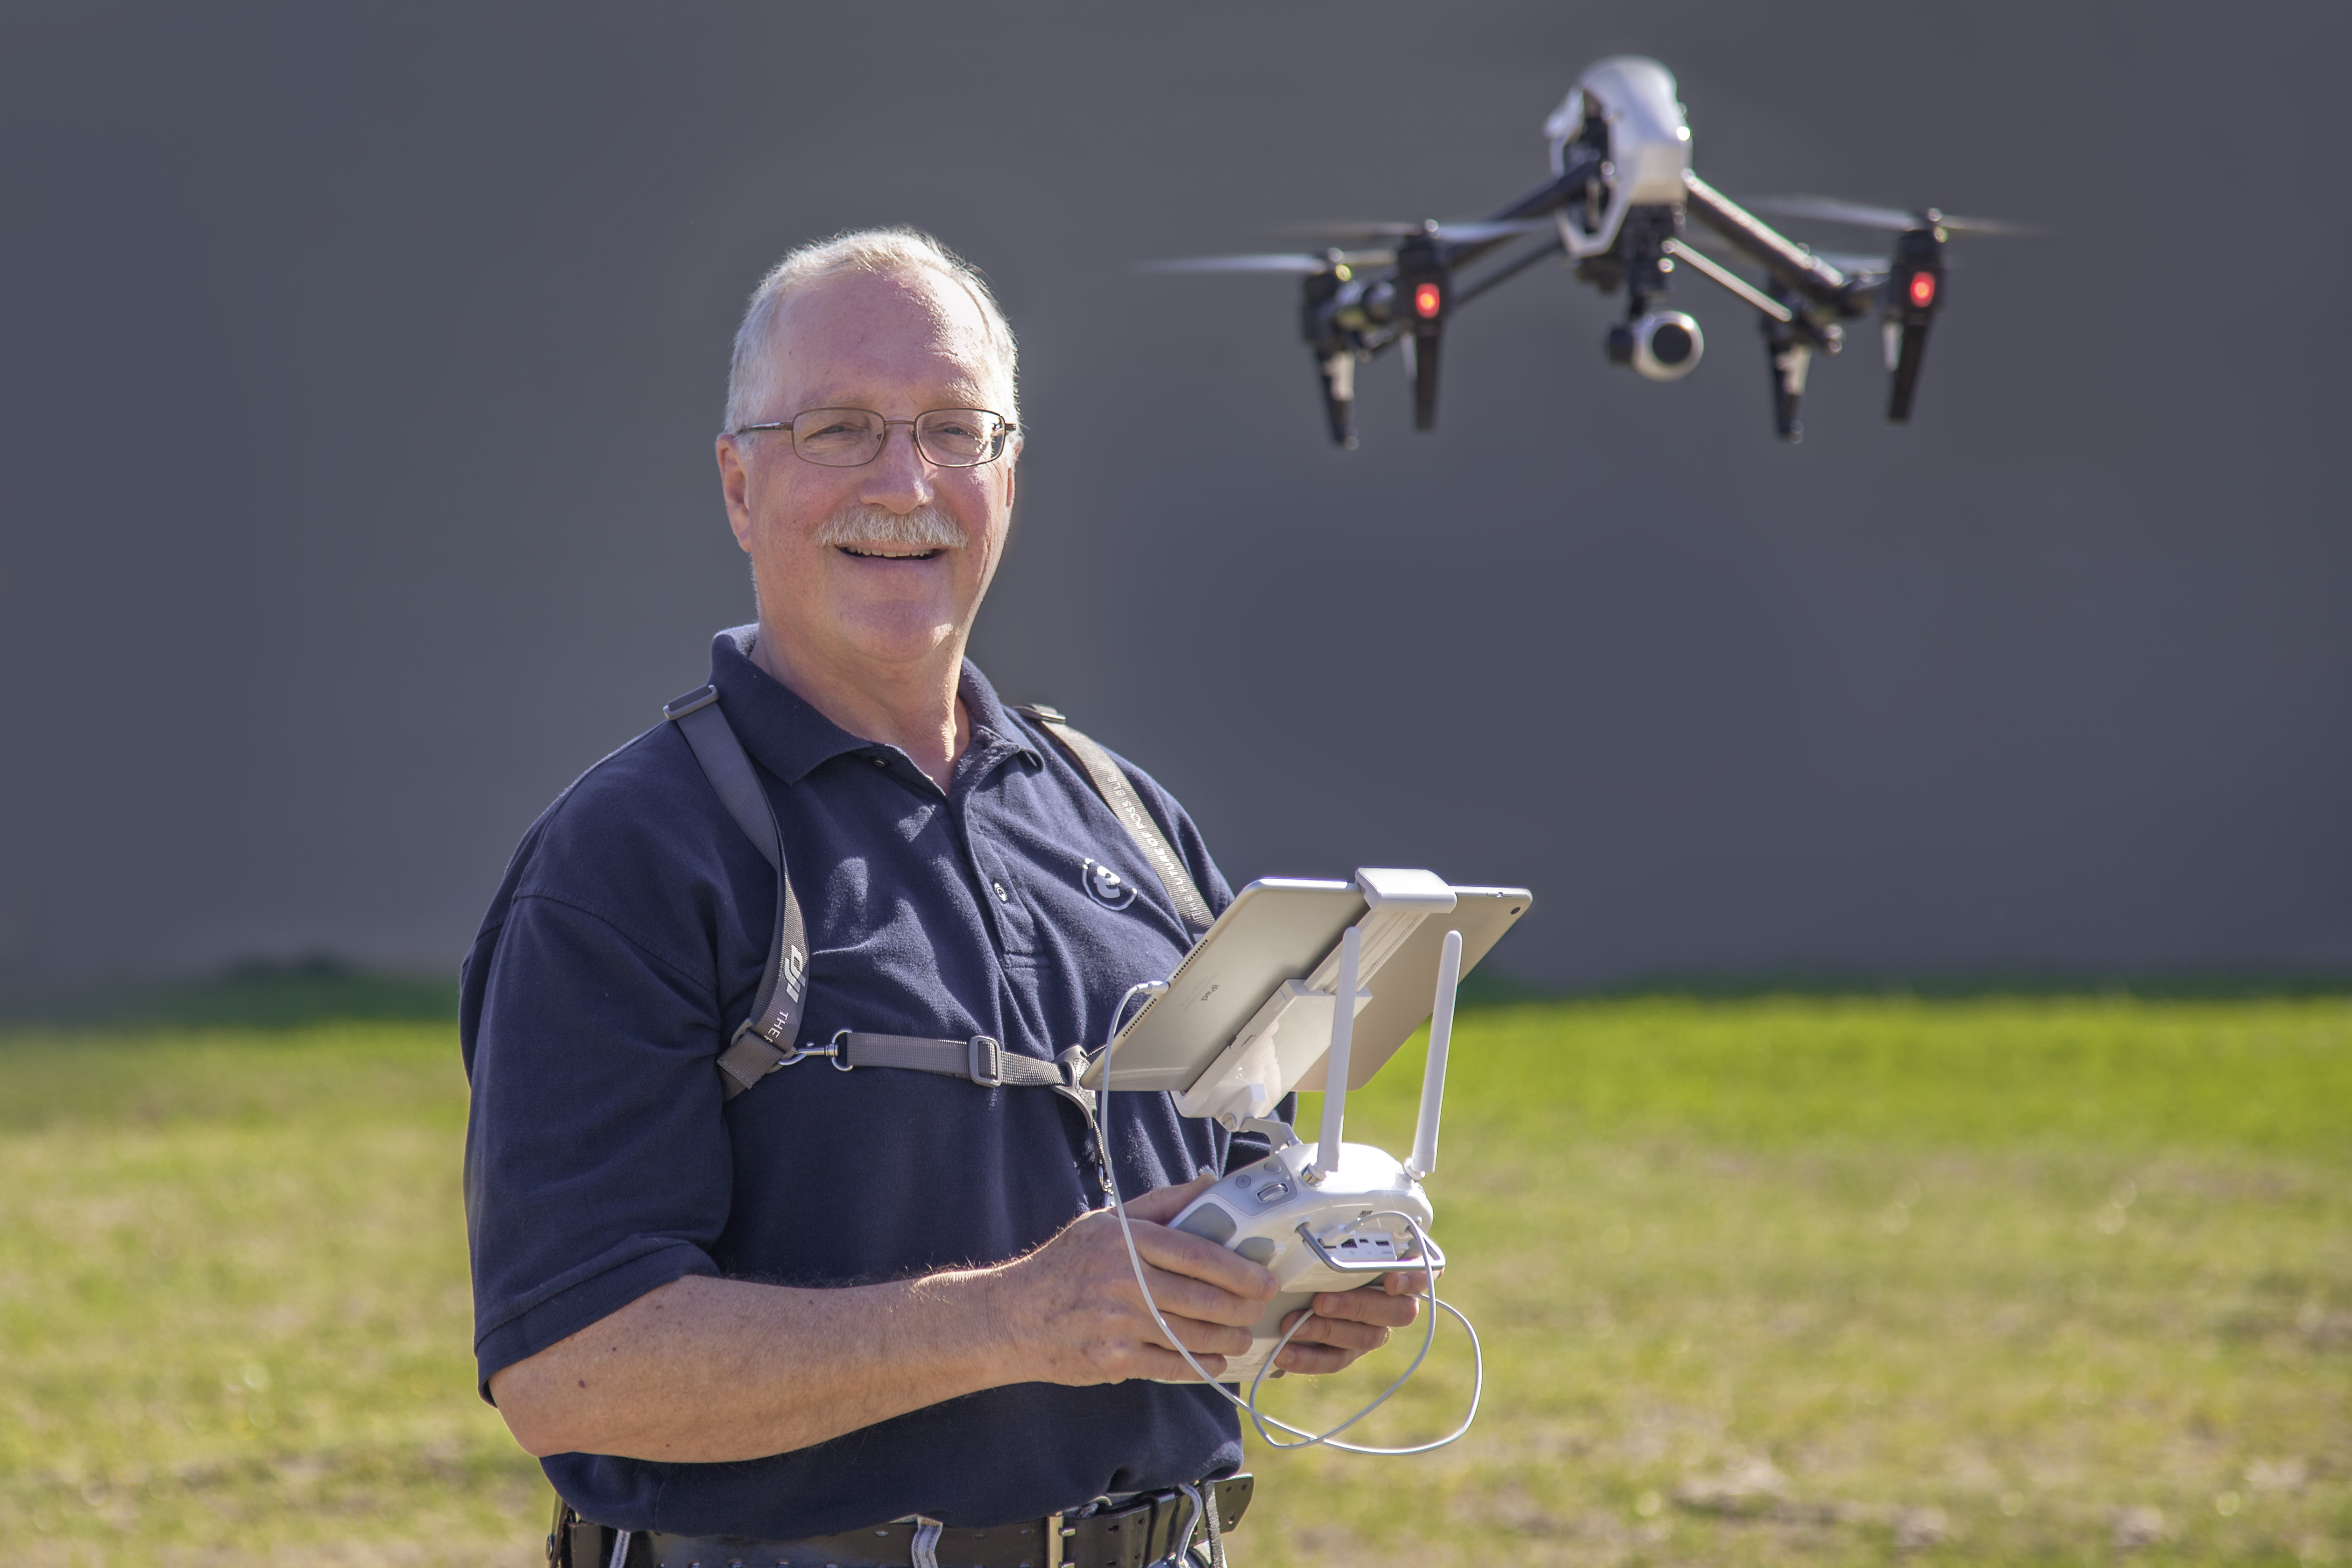 Dave Stanton with Drone